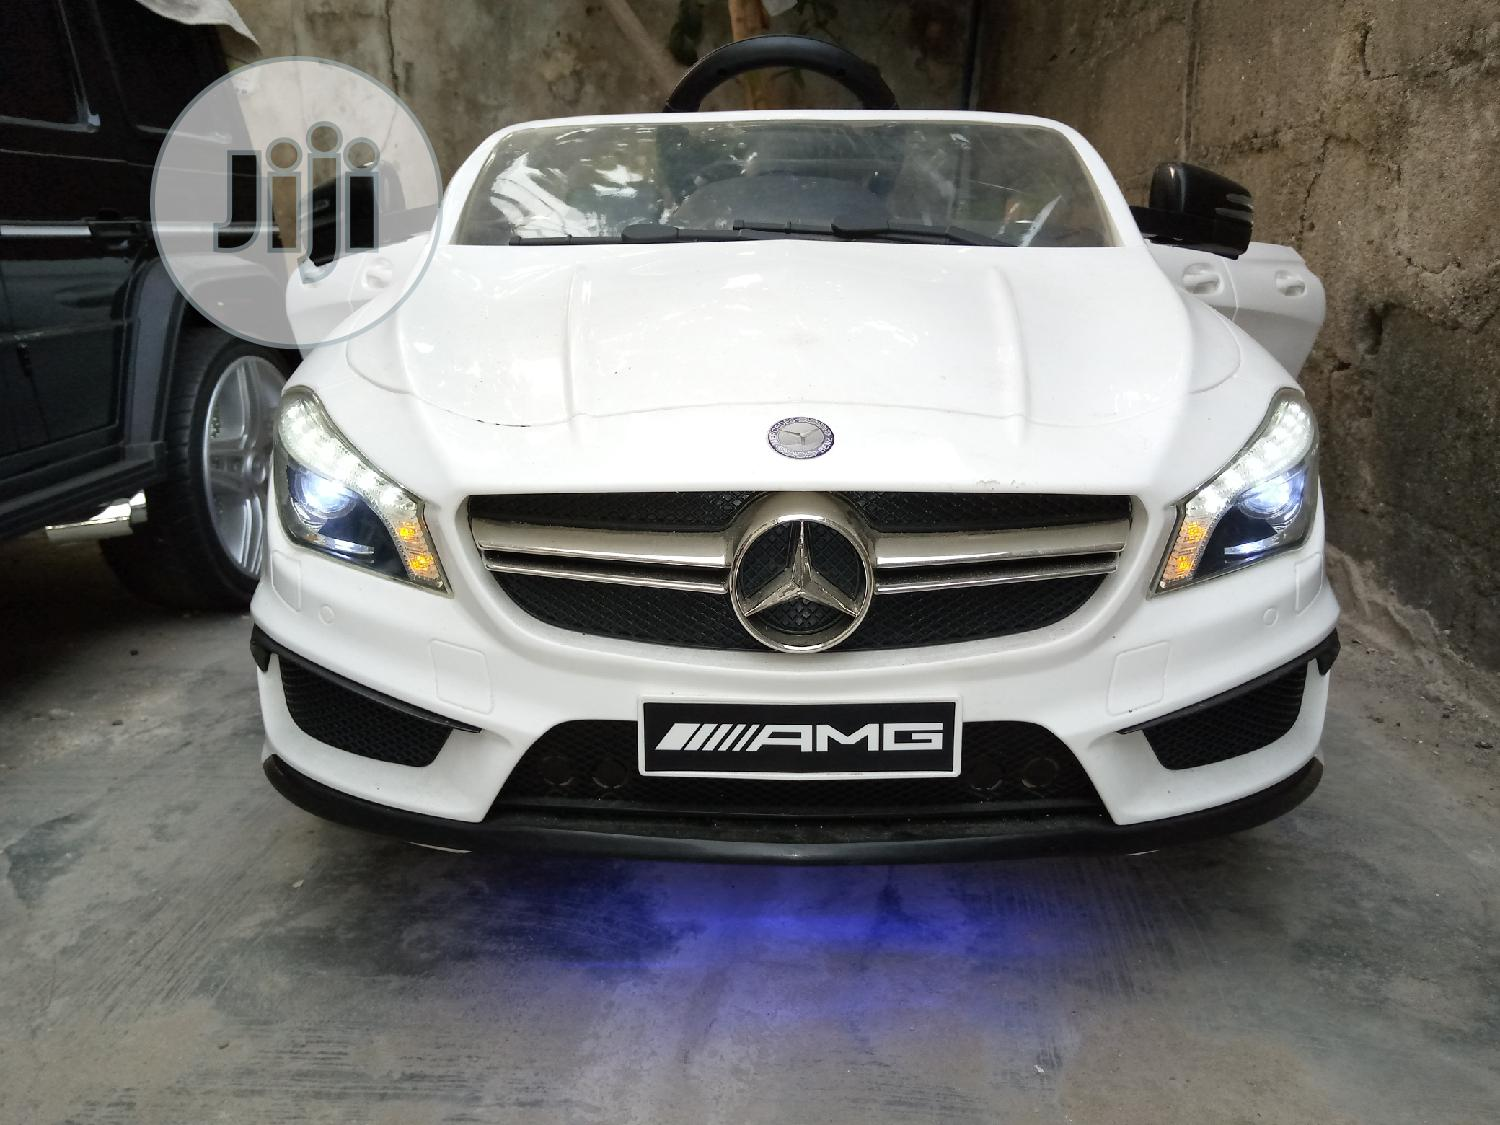 Cool Uk Used Licensed Kids Mercedes Benz CLA45 Super Car | Toys for sale in Surulere, Lagos State, Nigeria